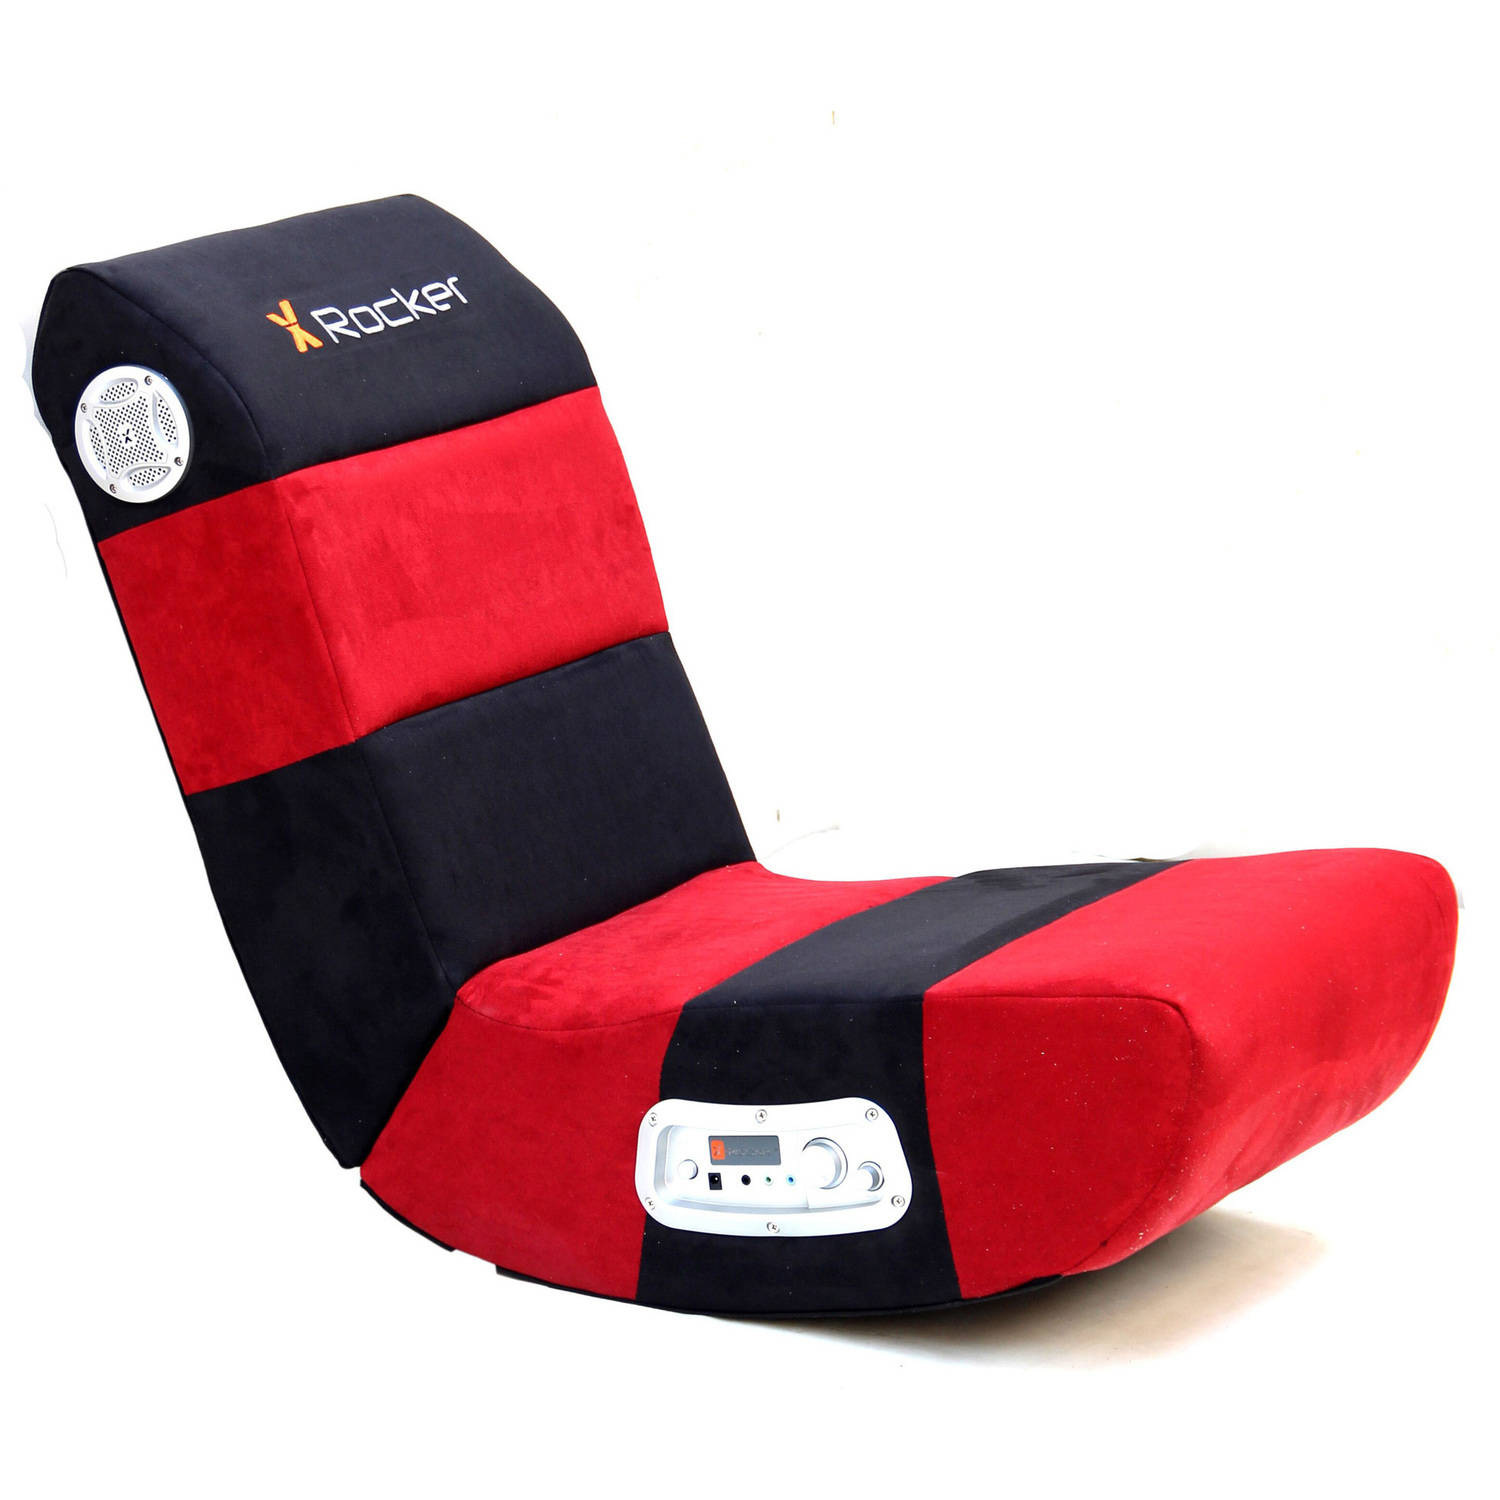 X Rocker 2.1 Wired Audio Gaming Chair, Rave Red/Black